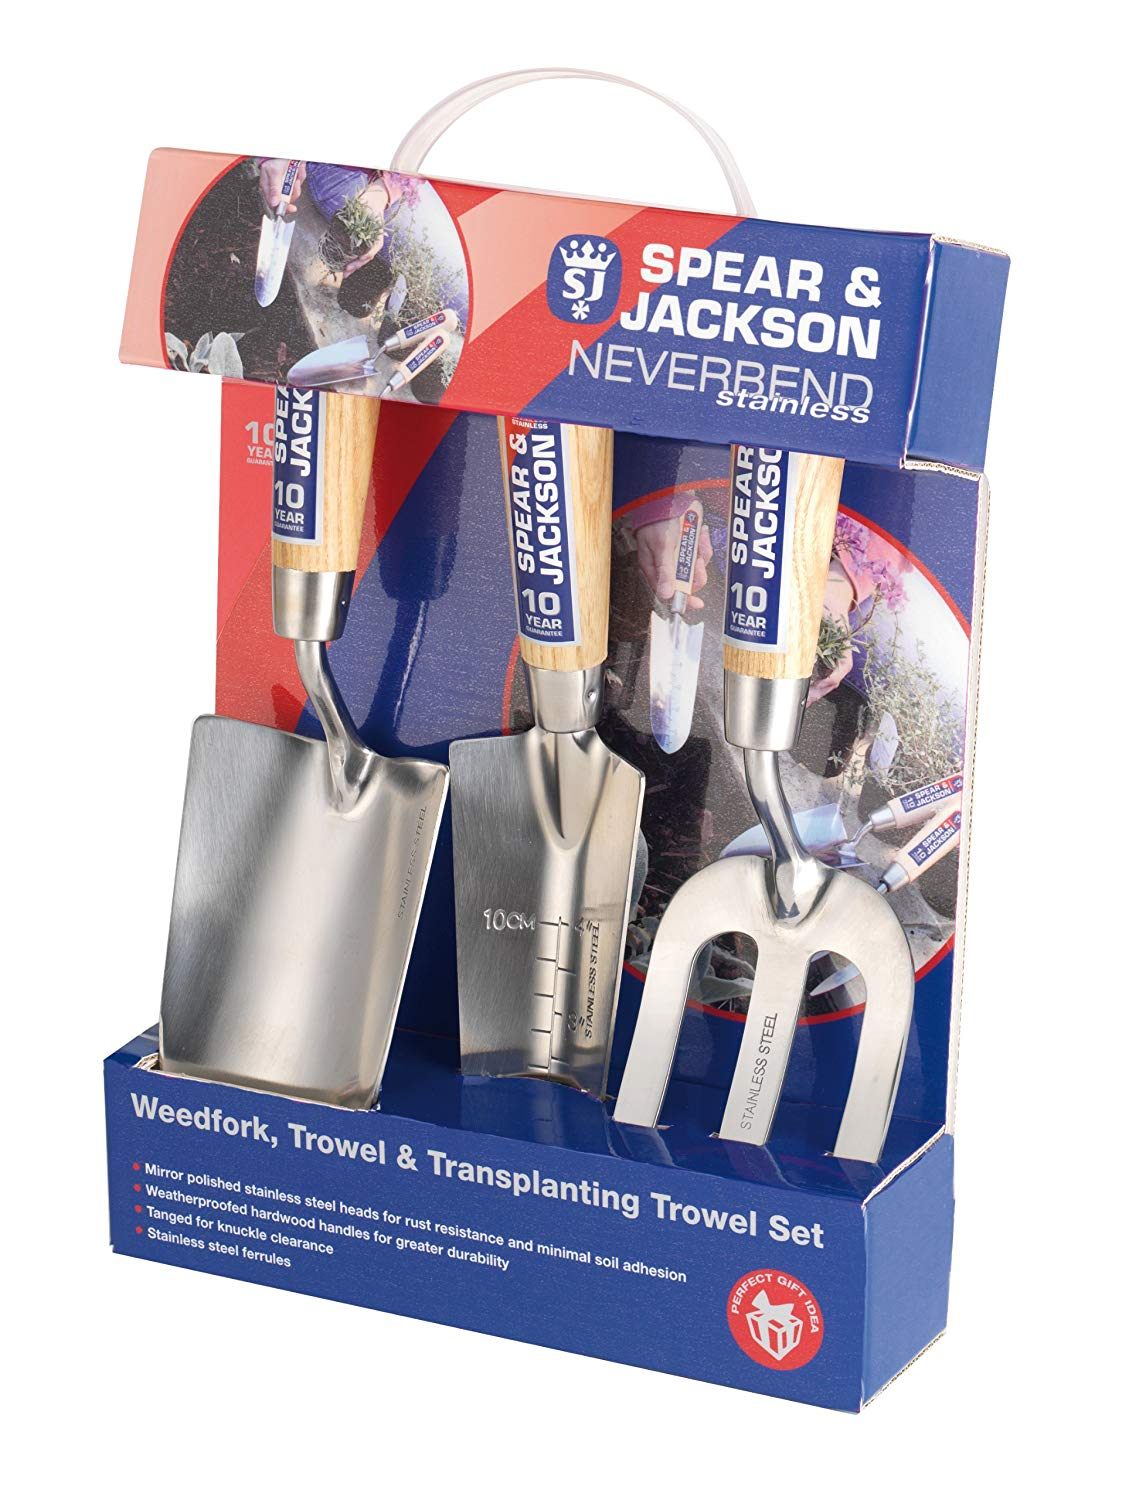 Spear & Jackson Neverbend Stainless Hand Tool Gift Set for £12.74